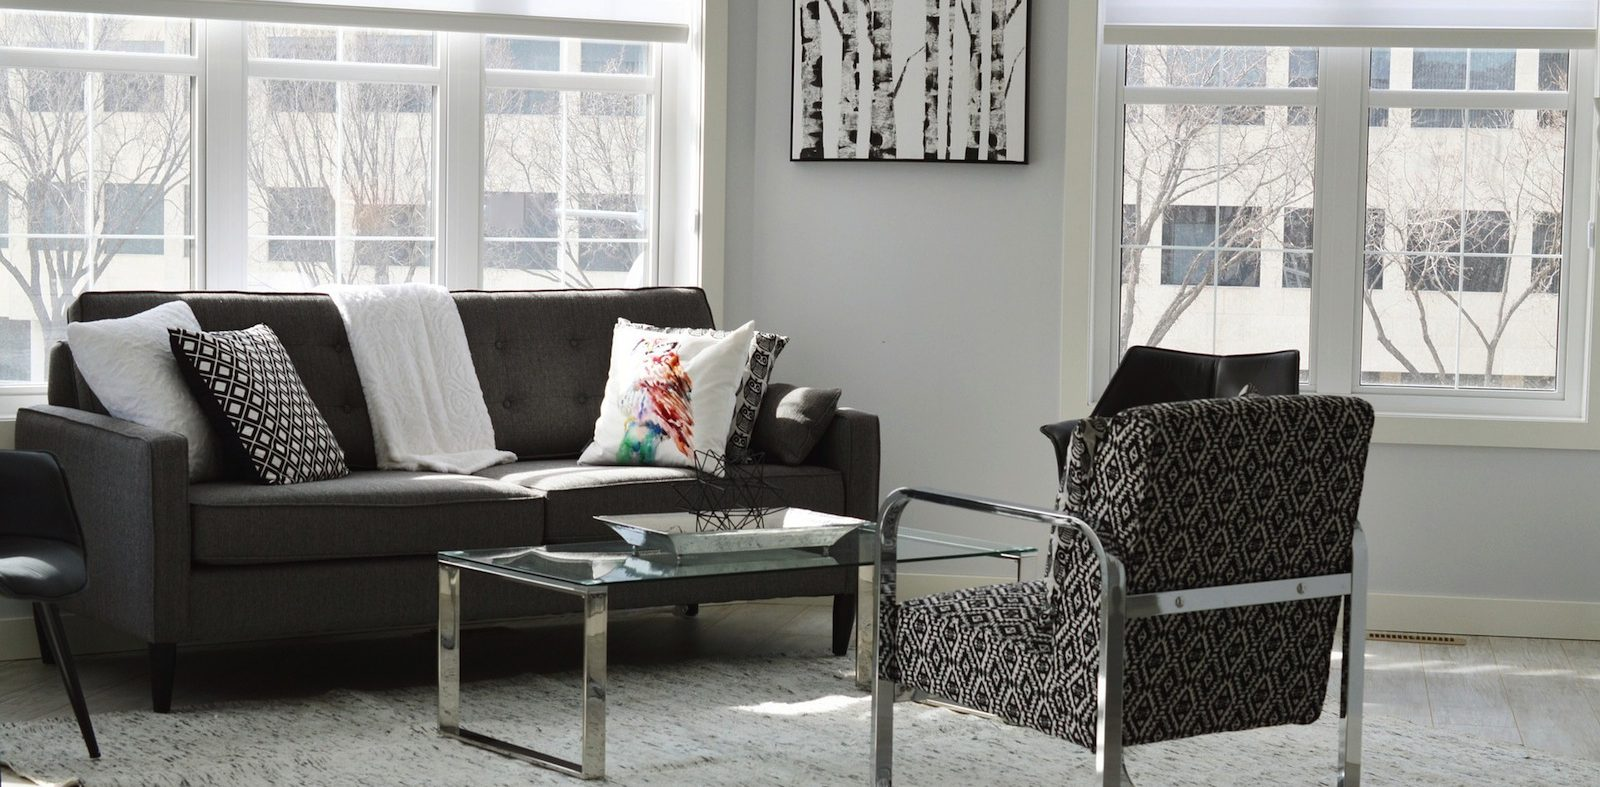 How to decorate without losing your security deposit